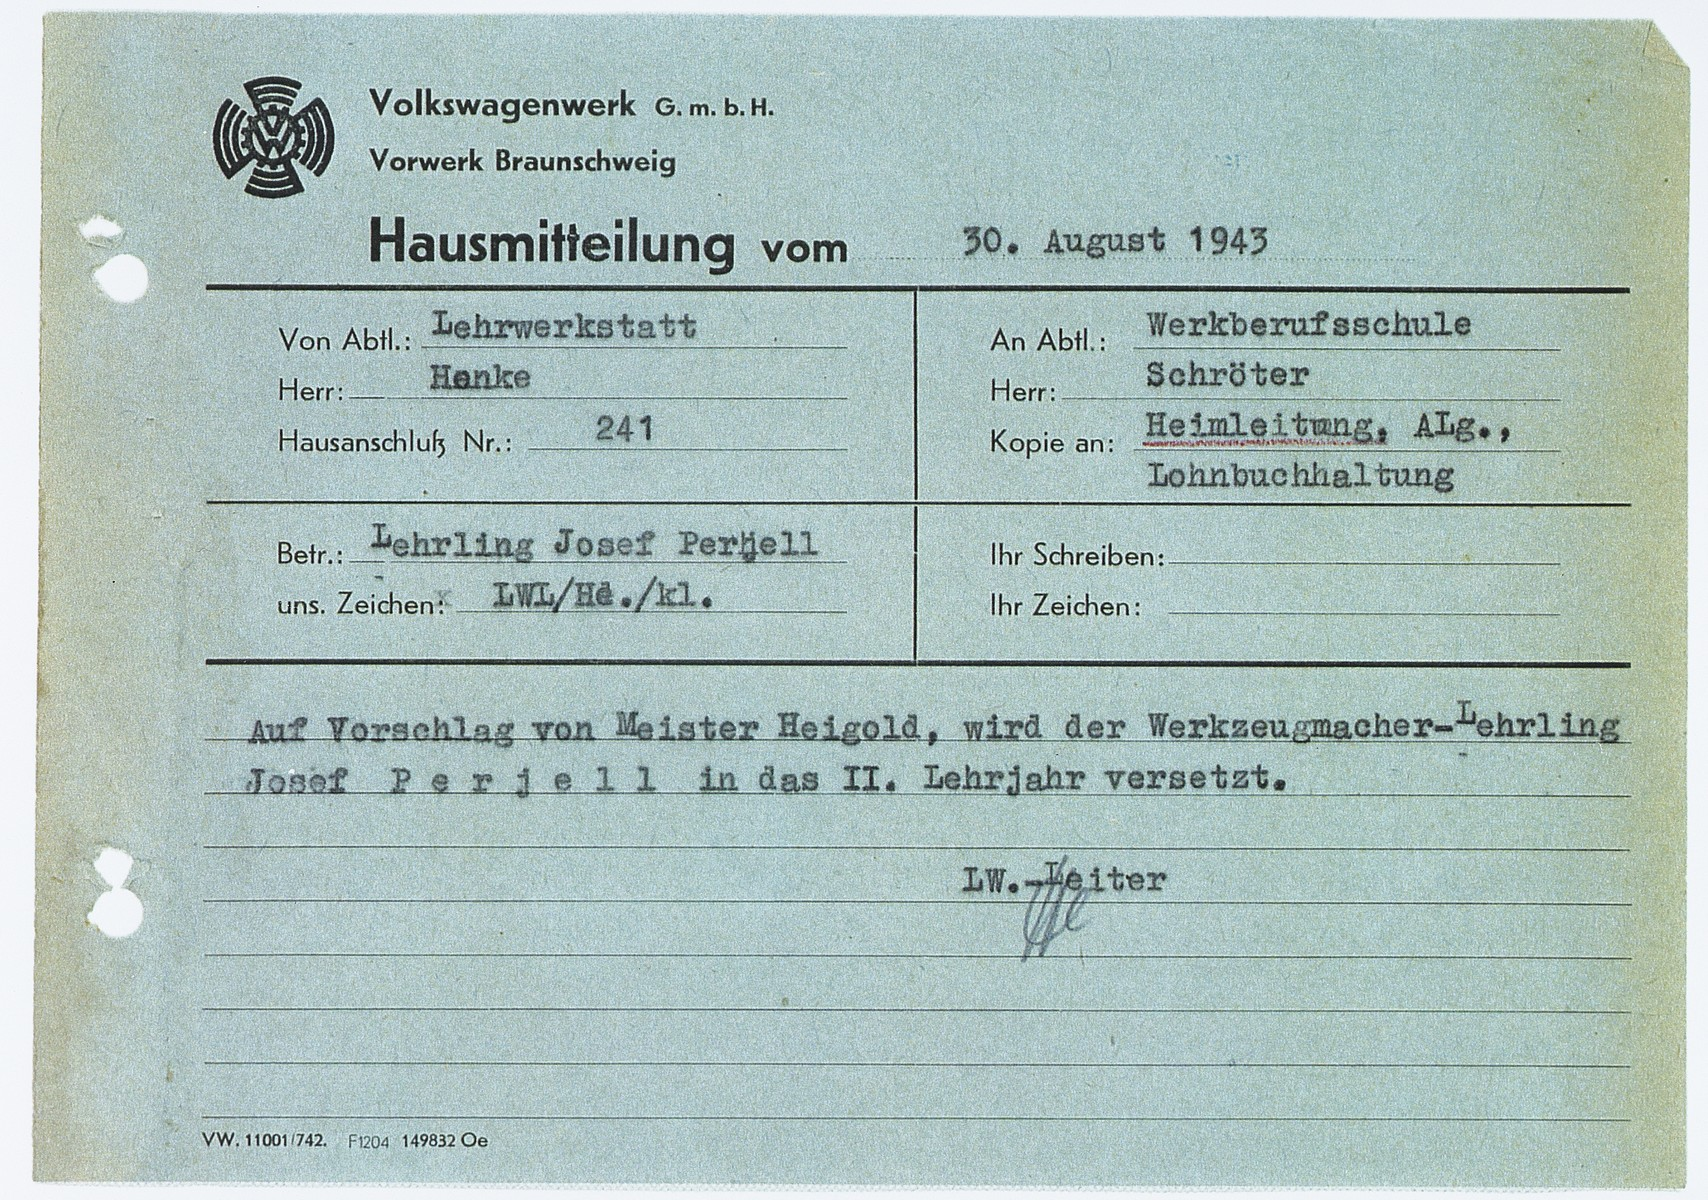 Memorandum from the supervisor of Josef Perjell (Solly Perel) stating that Perjell completed the second year of his apprenticeship at the Volkswagen factory.